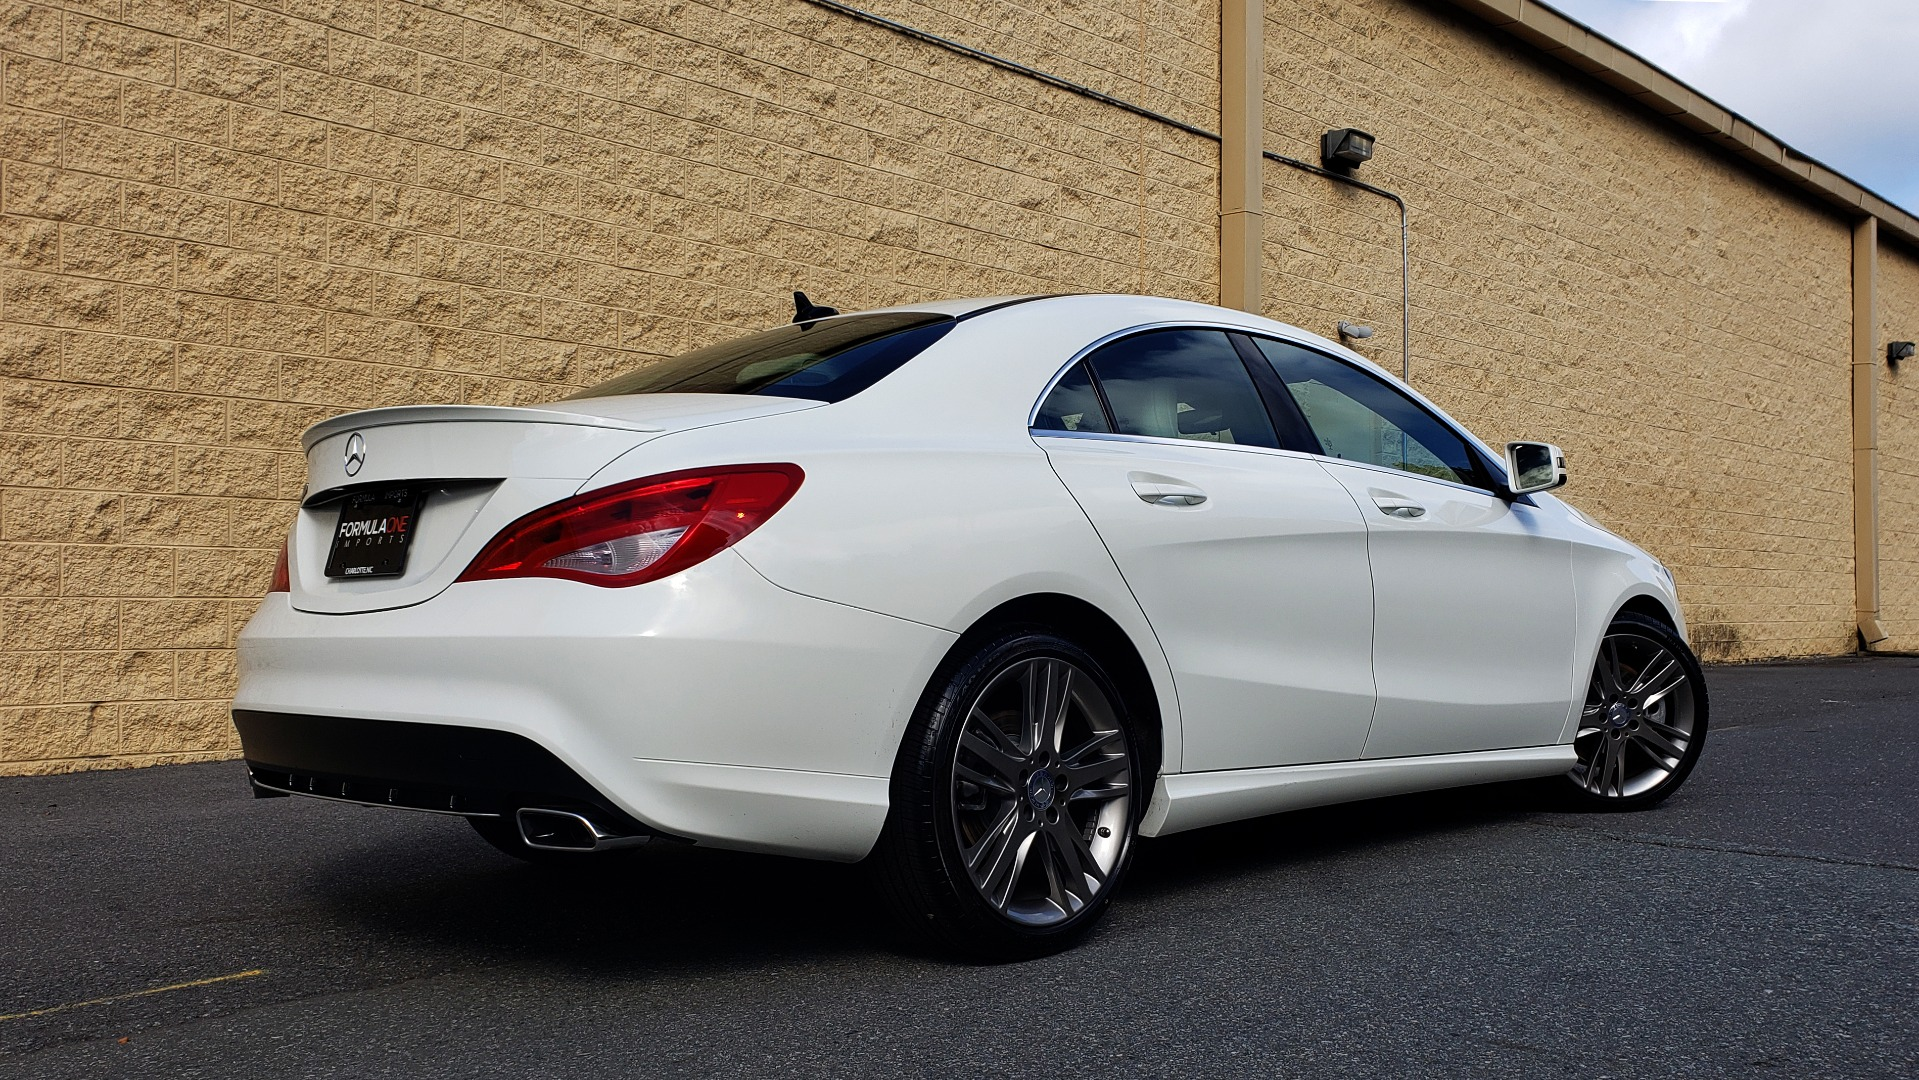 Used 2015 Mercedes-Benz CLA-Class CLA250 / FWD / SUNROOF / SPORT SUSP / CAMERA for sale Sold at Formula One Imports in Charlotte NC 28227 6